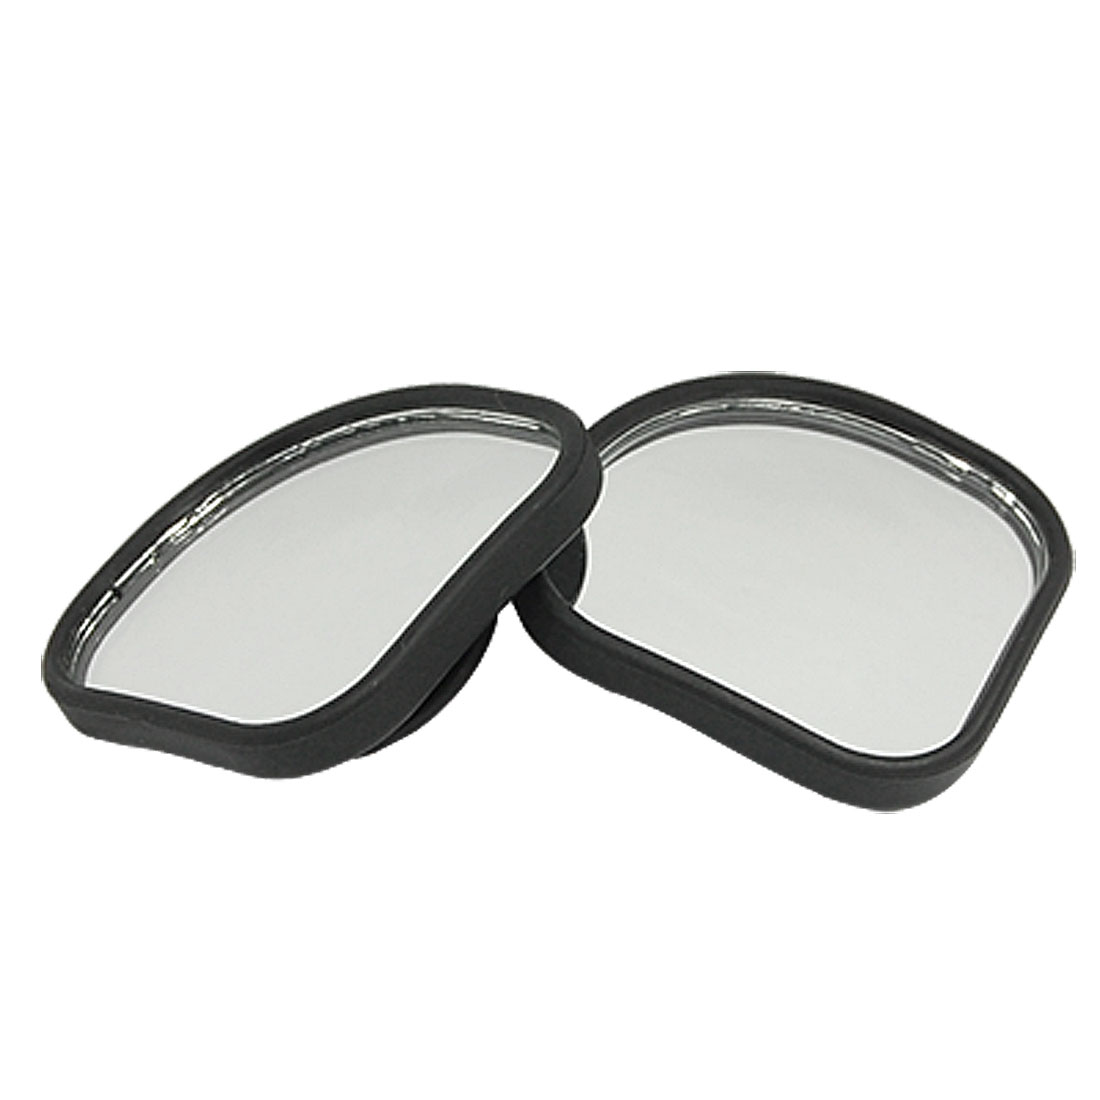 2 Pcs Car Rear View Auto Rearview Blind Spot Mirror